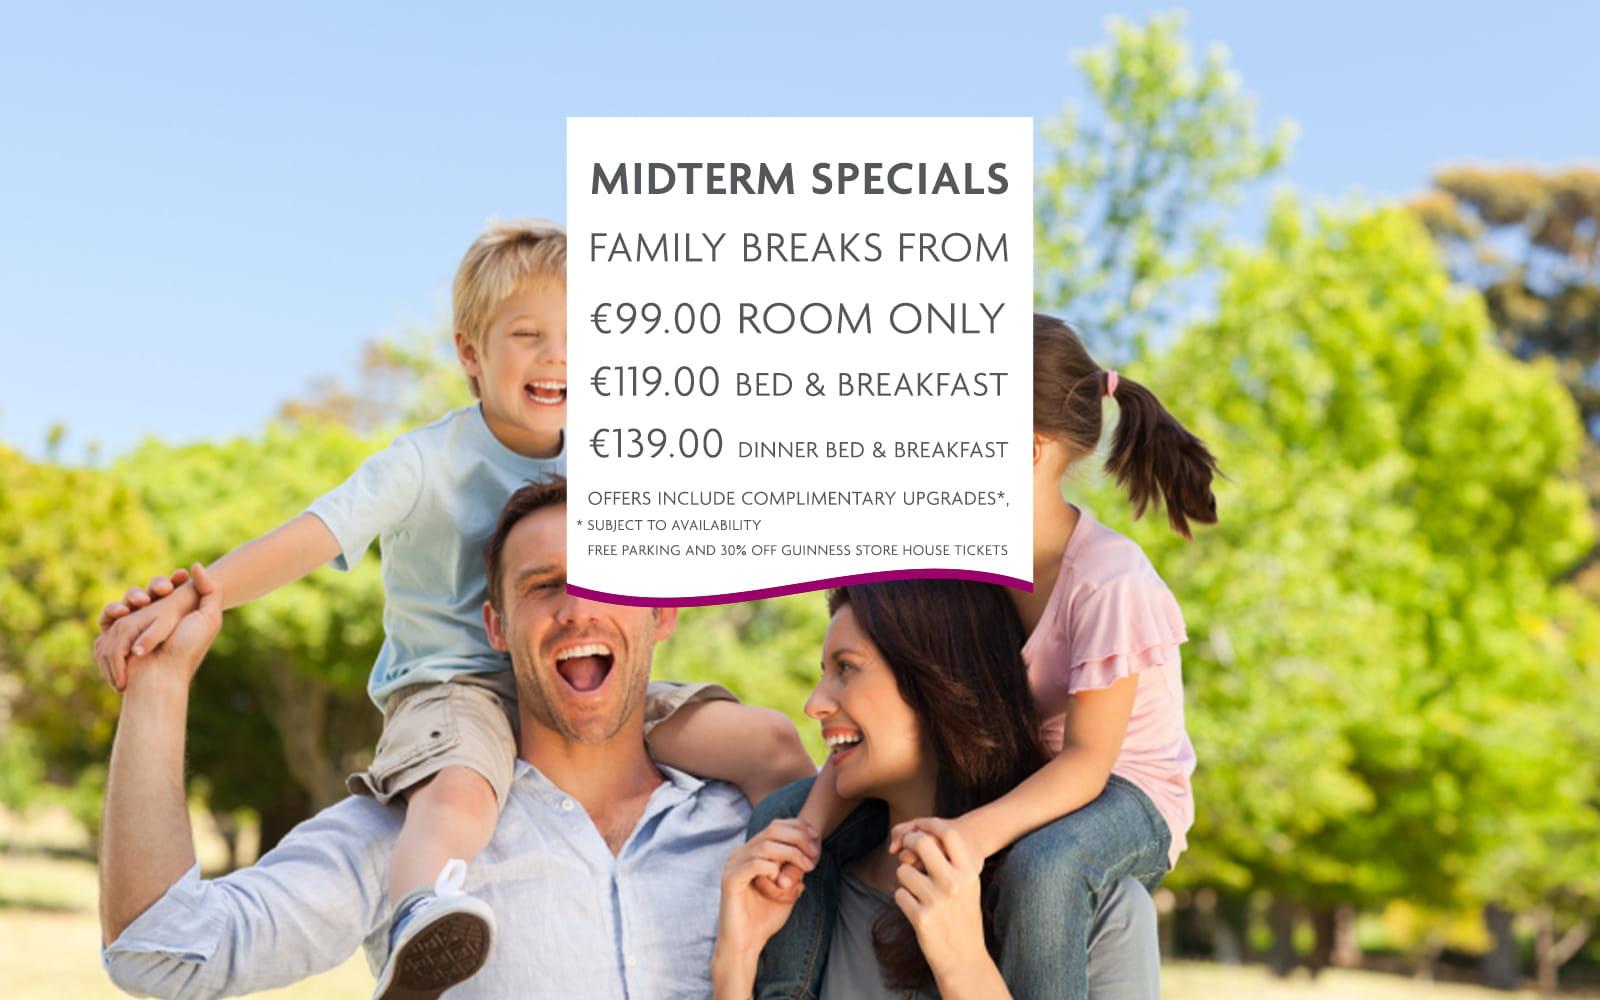 Crowne Plaza Blanchardstown midterm offer- happy family